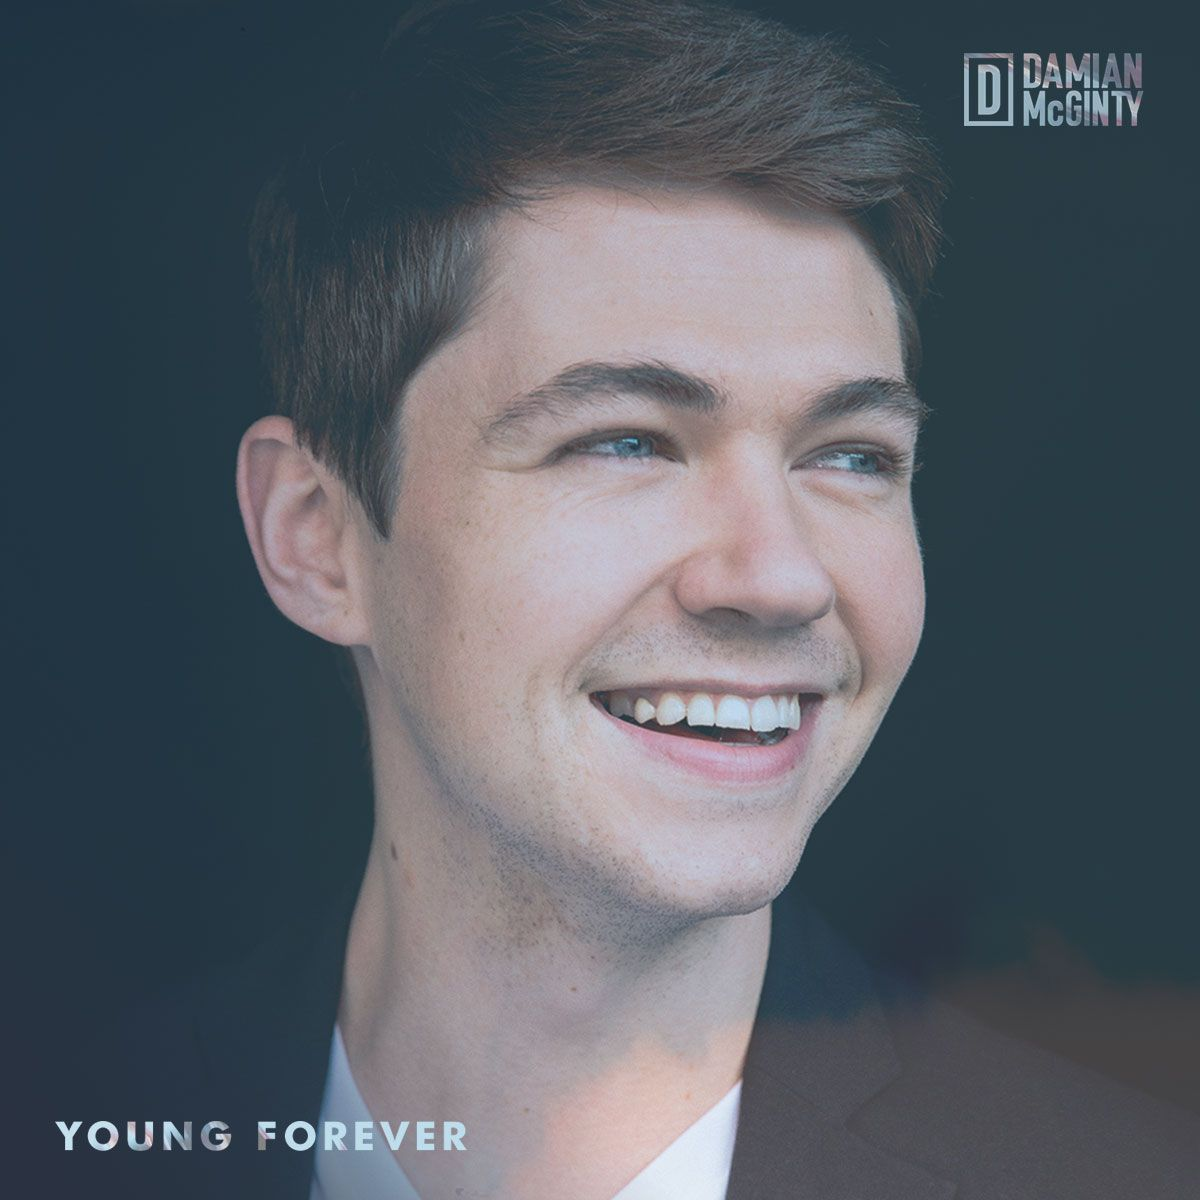 Six Quick Questions With Damian McGinty - New Album 'Young Forever' Out Today